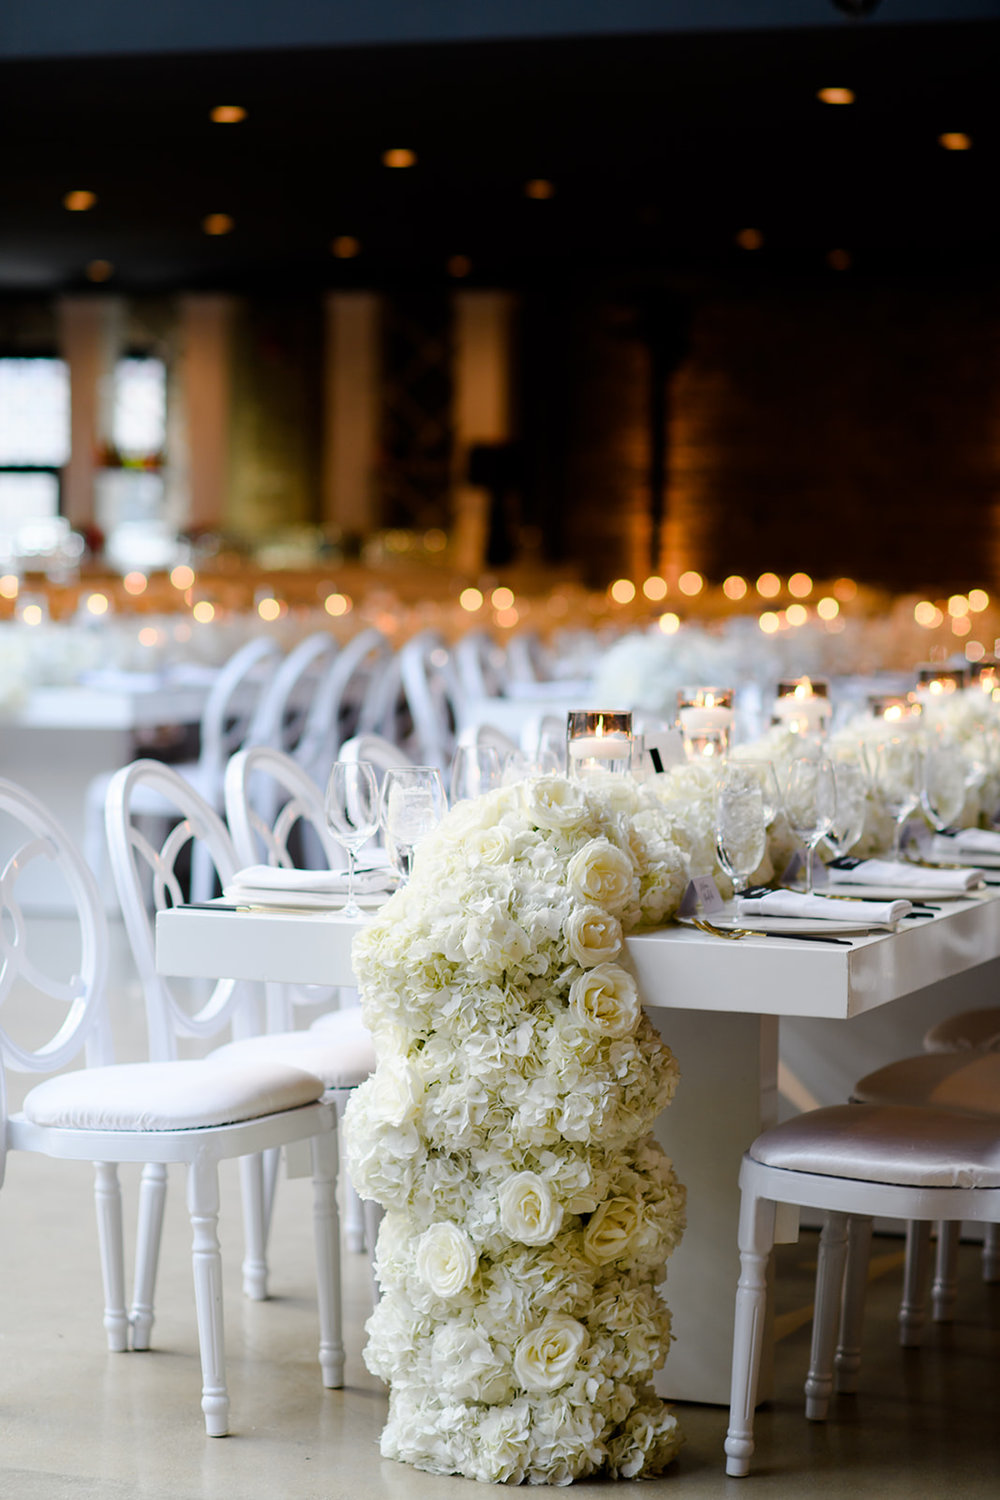 Cascading white roses and hydrangeas spilled over the tables.